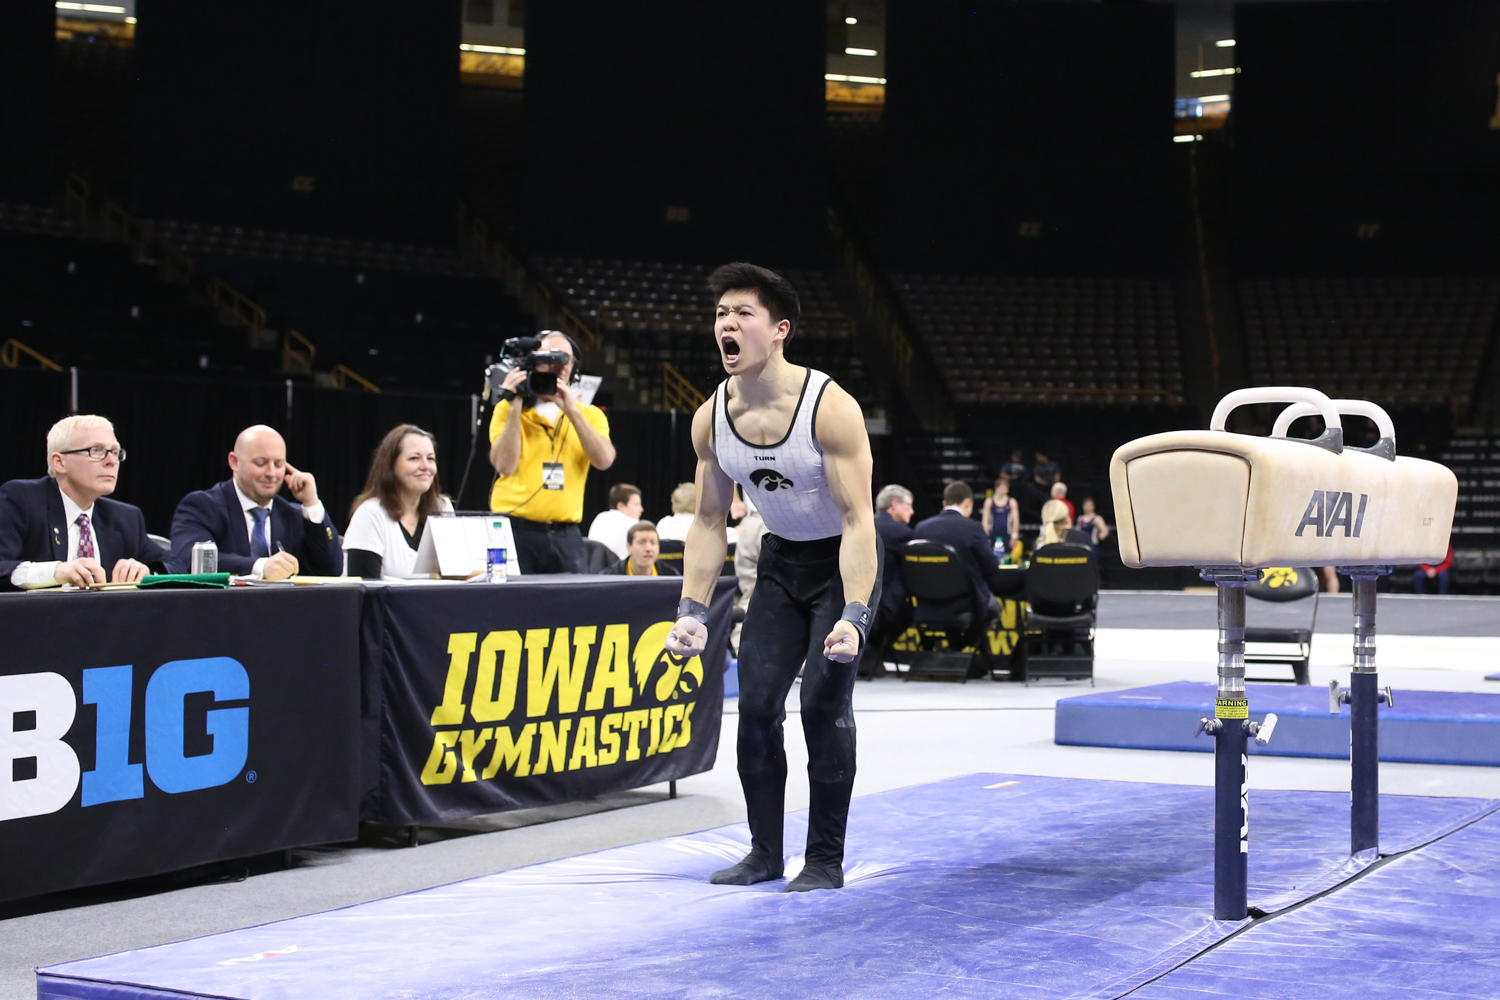 Iowa gymnast Bennet Huang celebrates after dismounting the pommel horse during a gymnastics meet against Minnesota and Illinois-Chicago on Saturday, Feb 2, 2019. The Golden Gophers won the meet with a total score of 406.400 with the Hawkeyes scoring 401.600 and the Flames scoring 355.750.